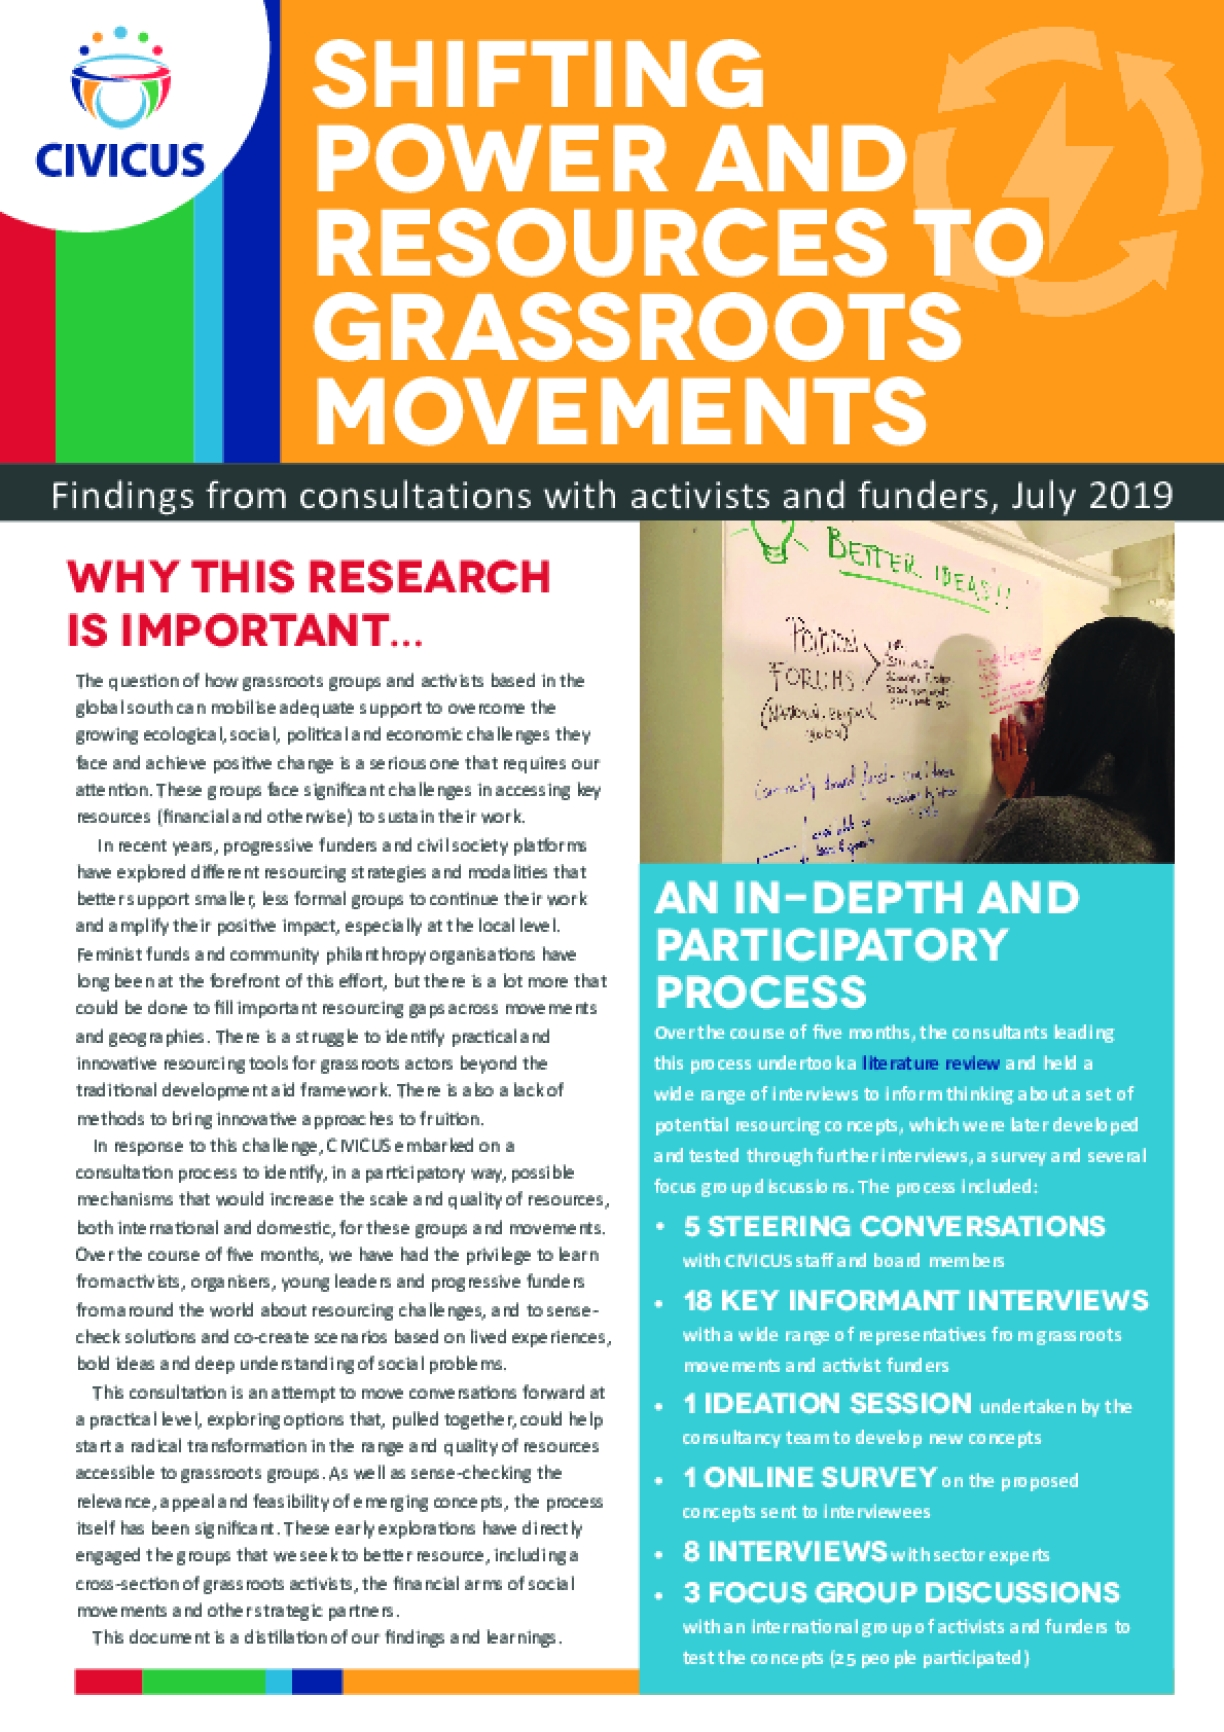 Shifting Power And Resources To Grassroots Movements: Findings from consultations with activists and funders, July 2019